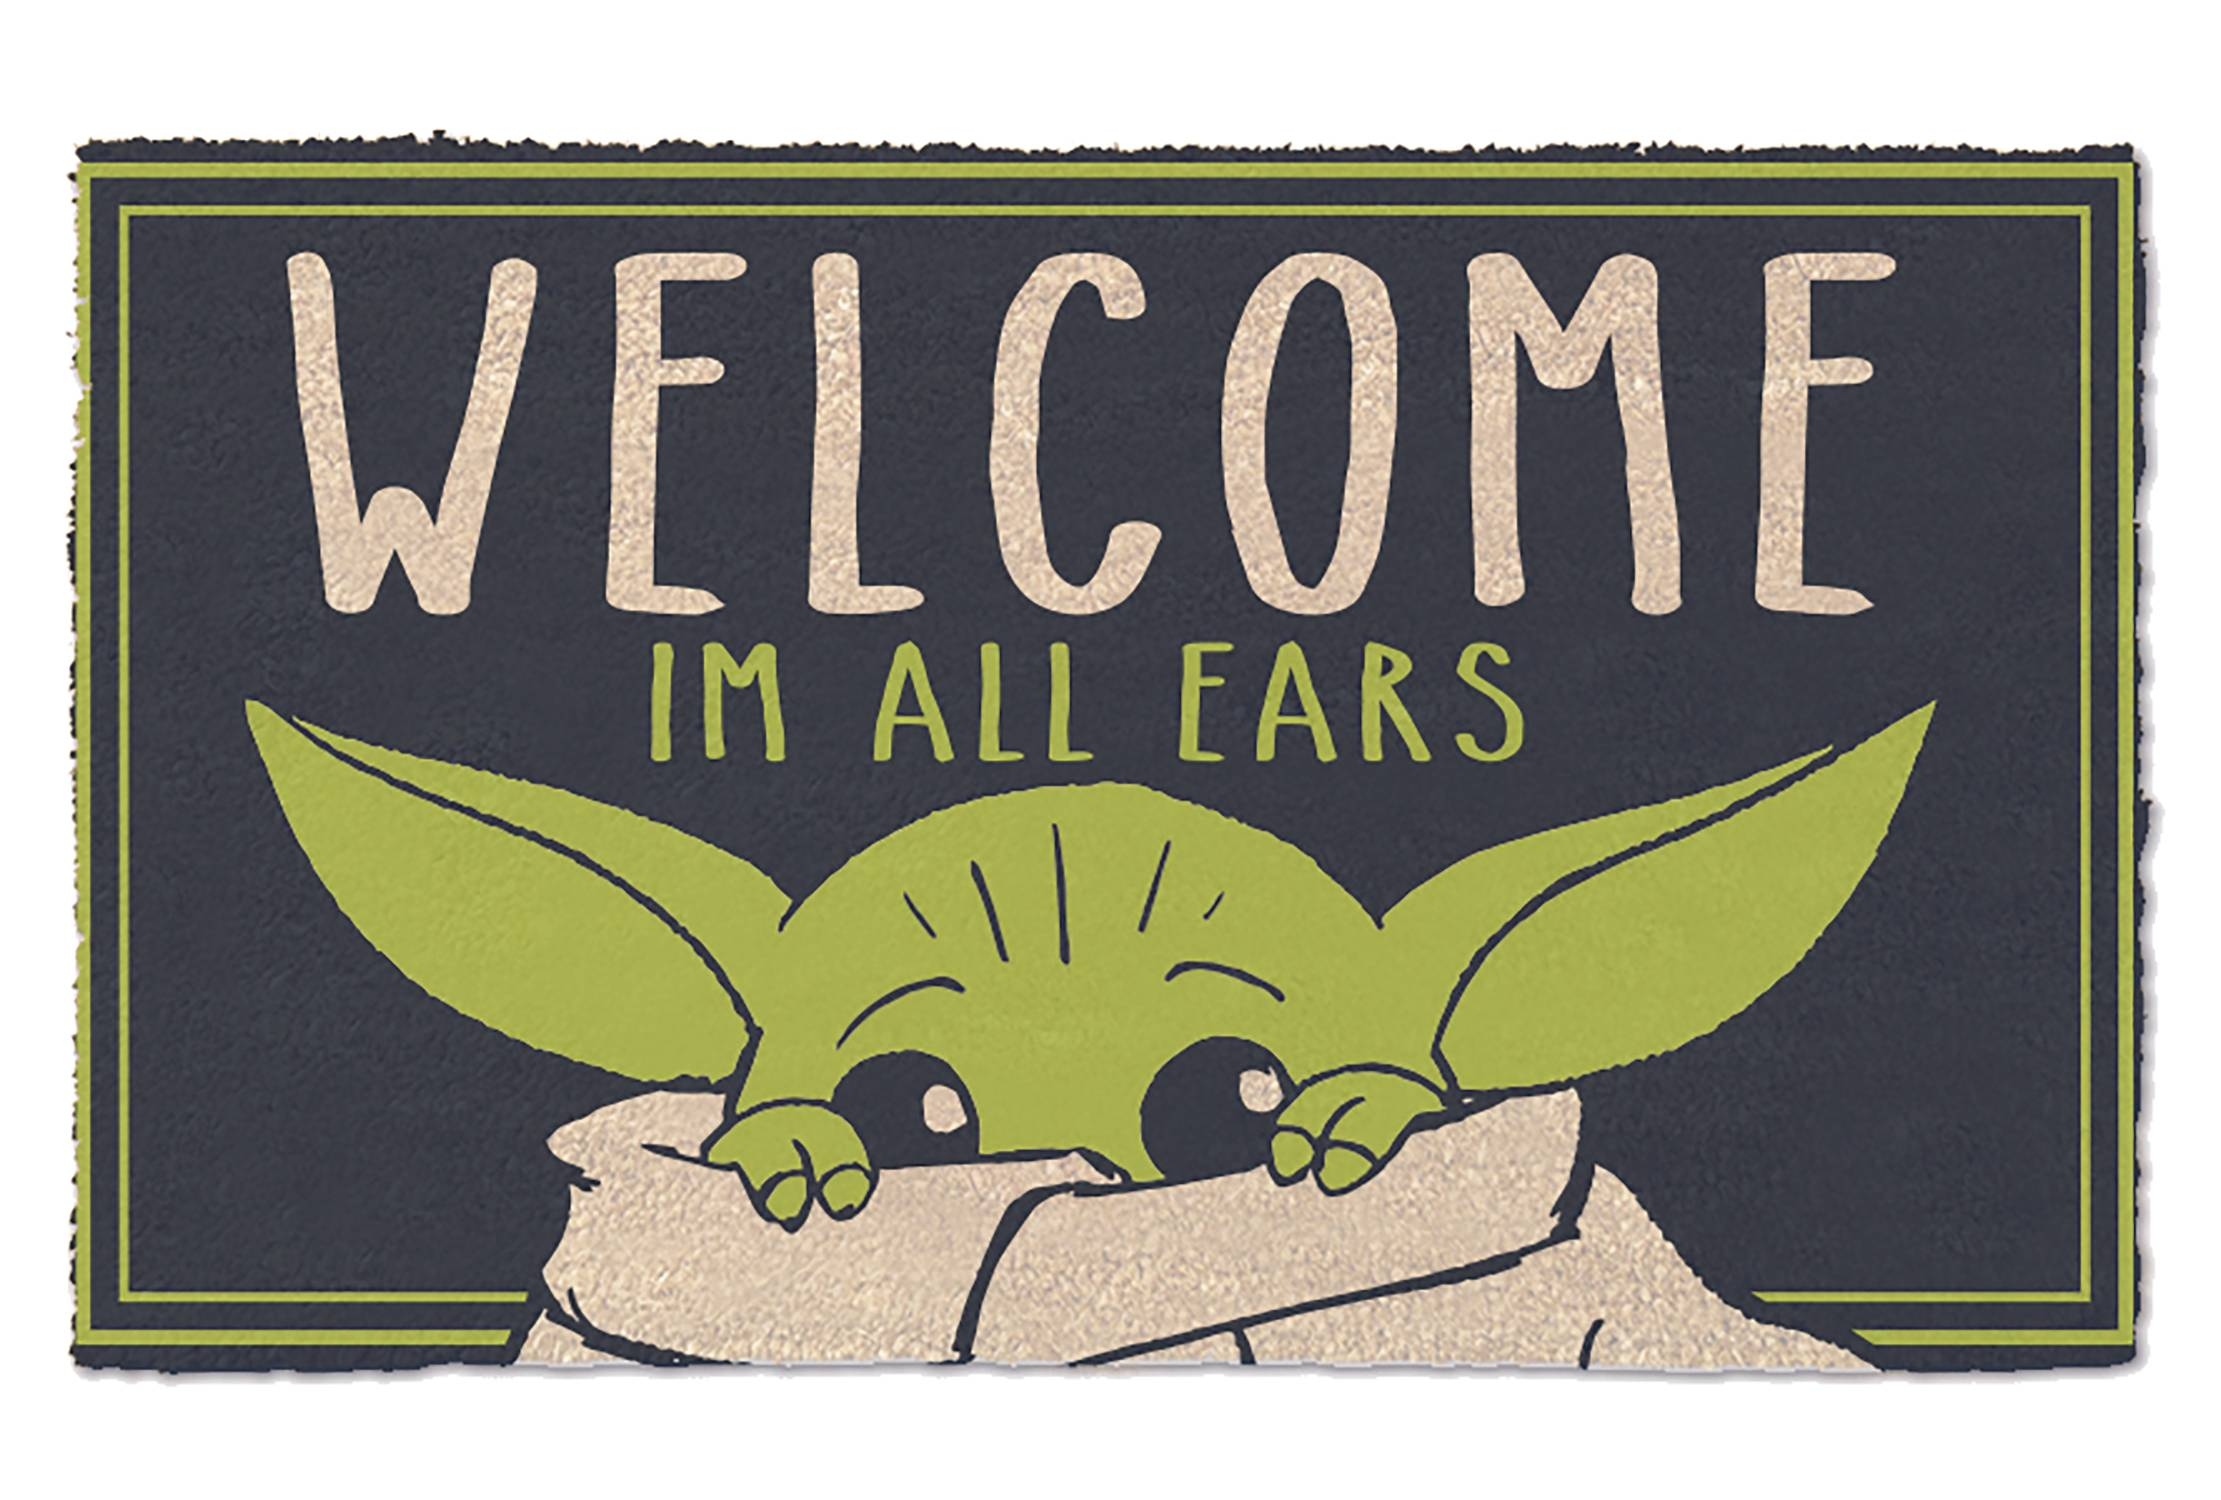 STAR WARS THE MANDALORIAN IM ALL EARS DOORMAT